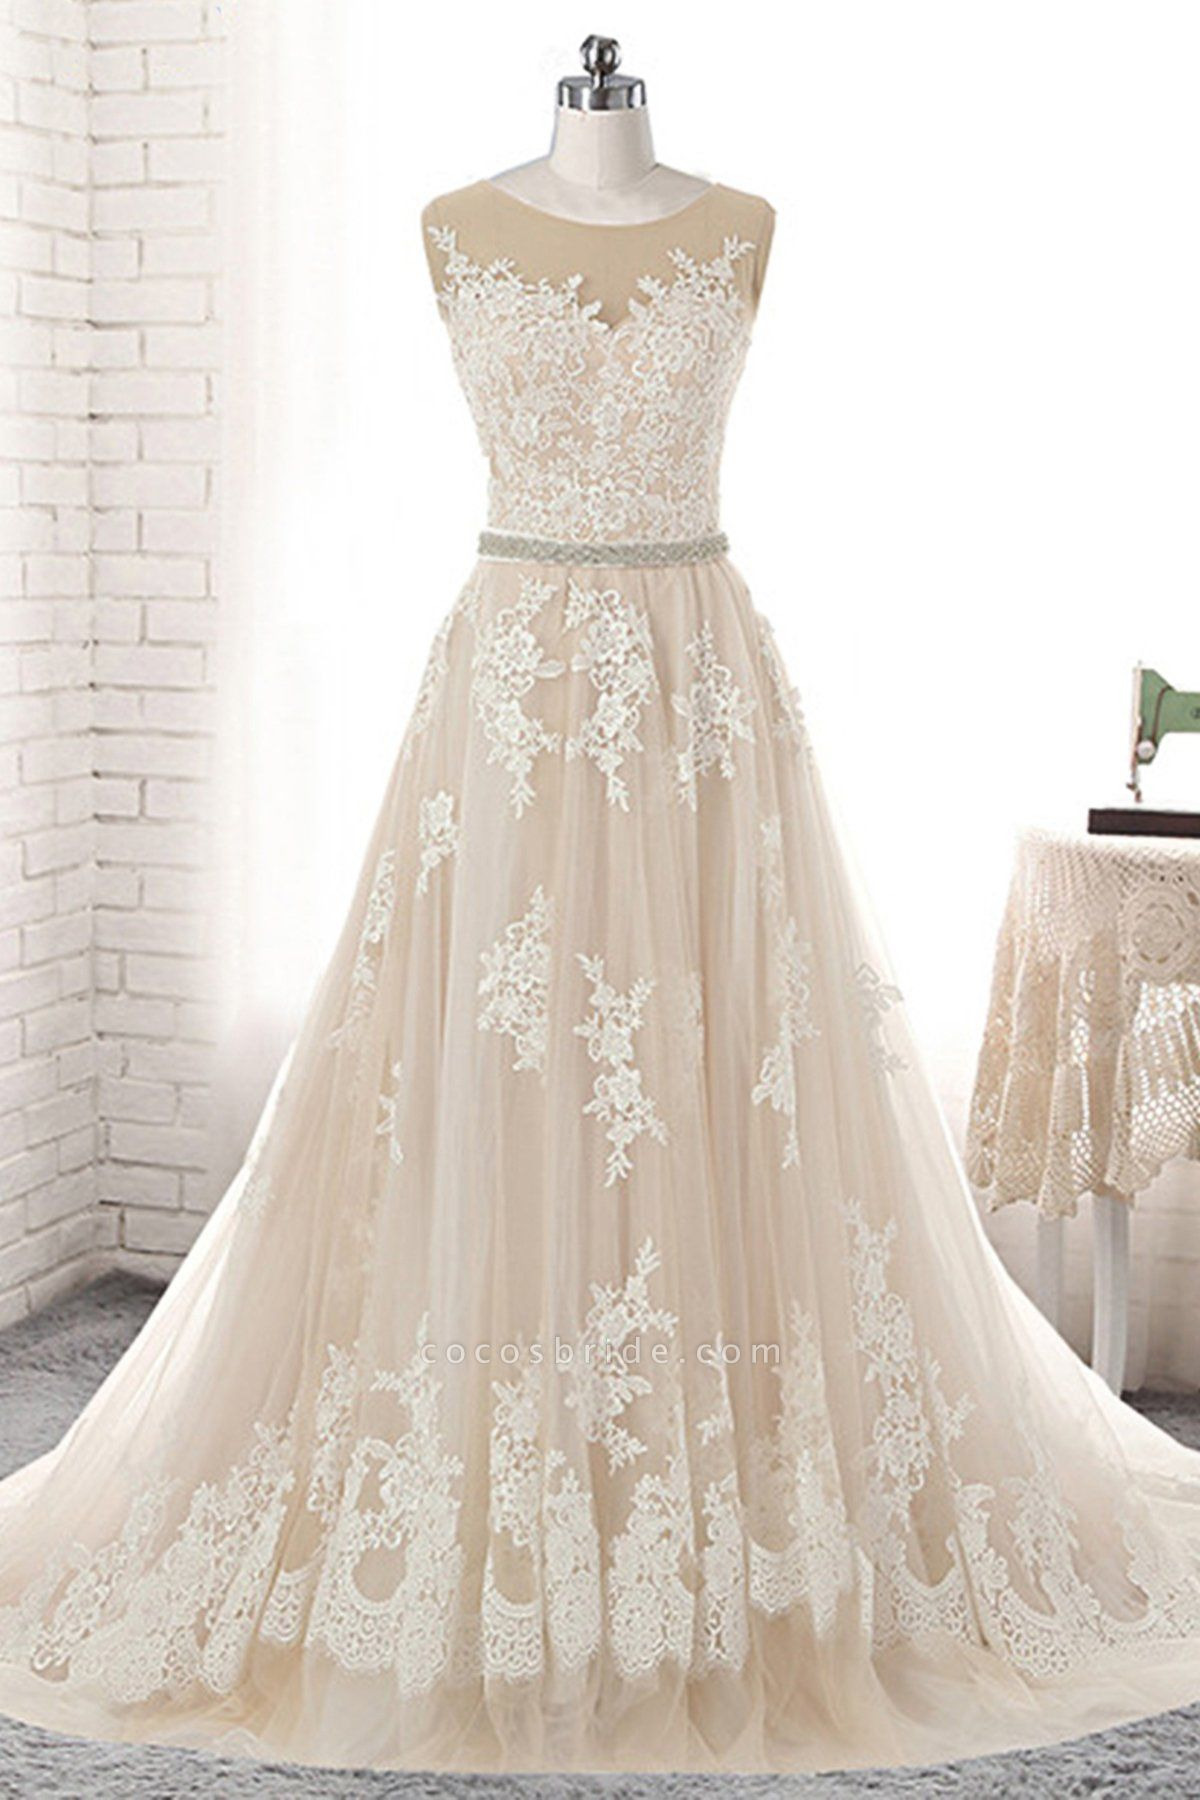 Creamy Tulle Round Neck White Lace Applique Long Wedding Dress